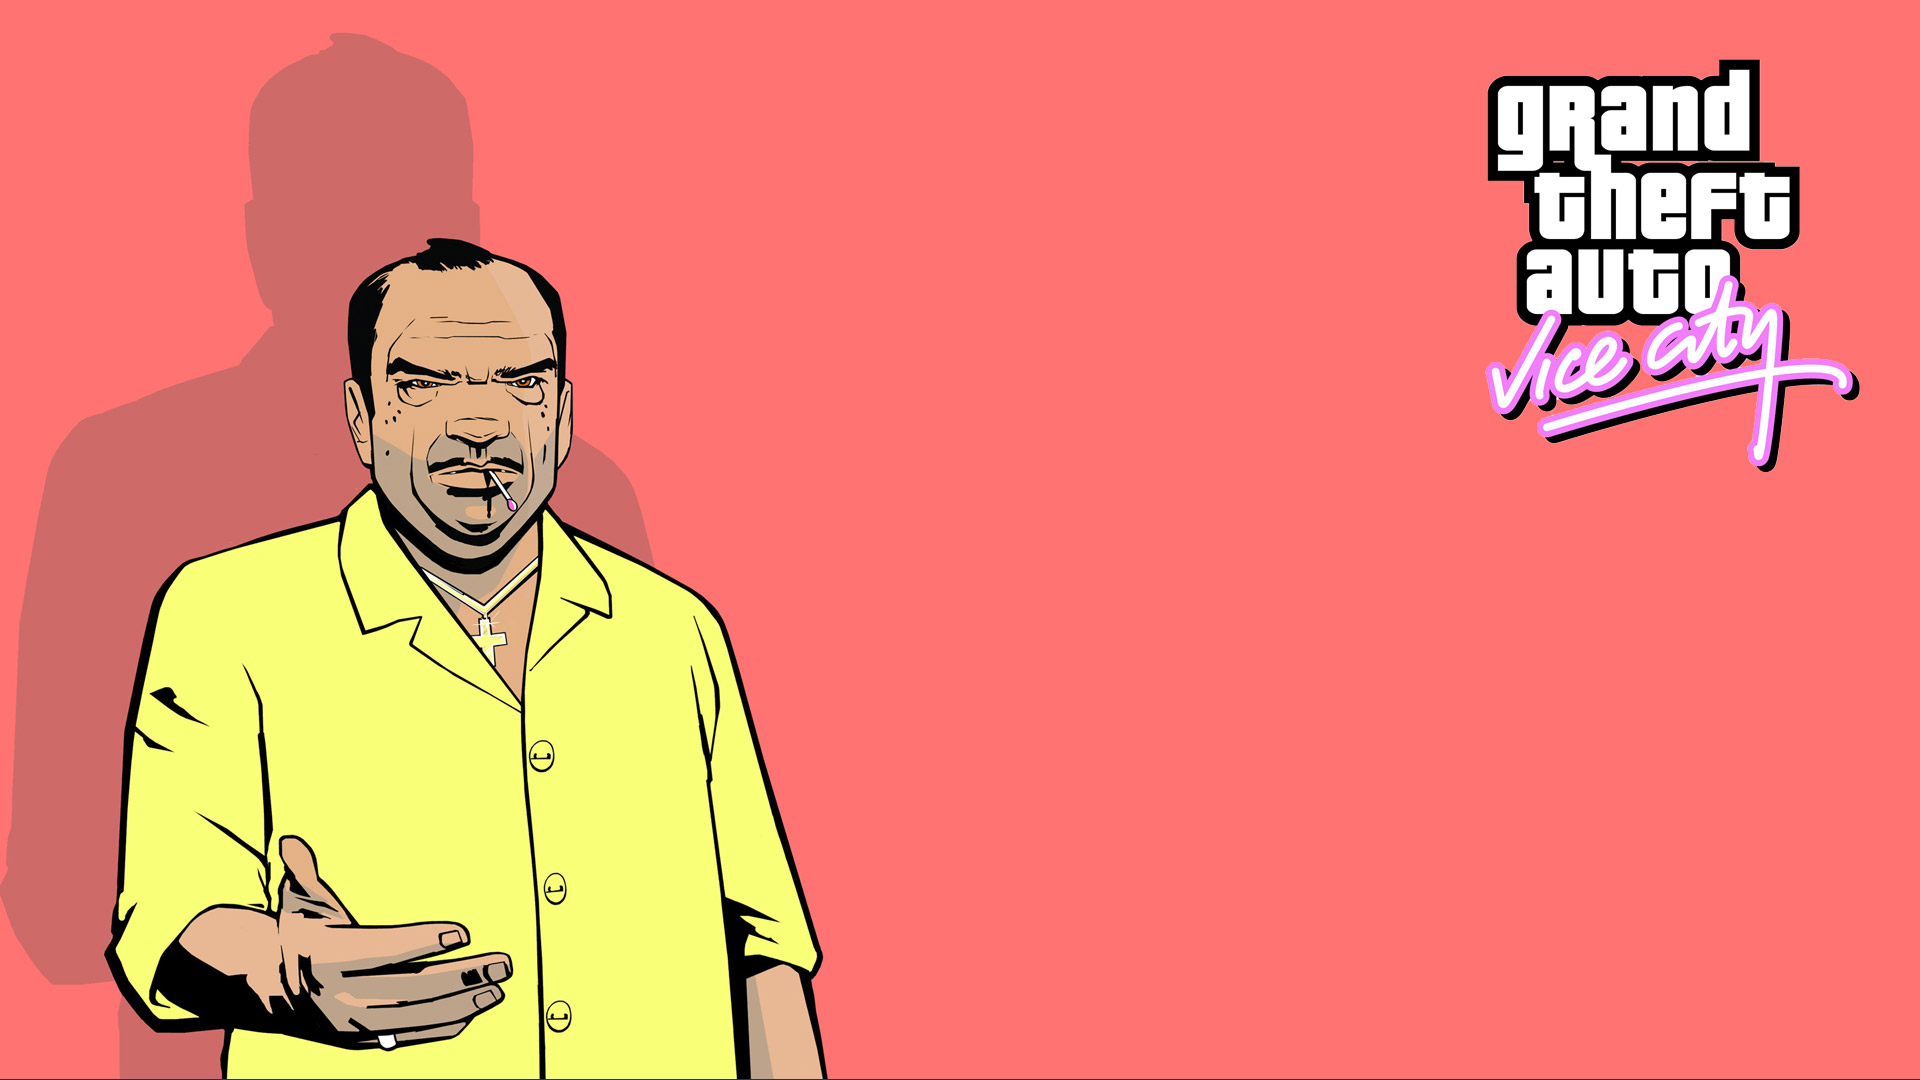 Grand Theft Auto: Vice City Wallpaper in 1920x1080